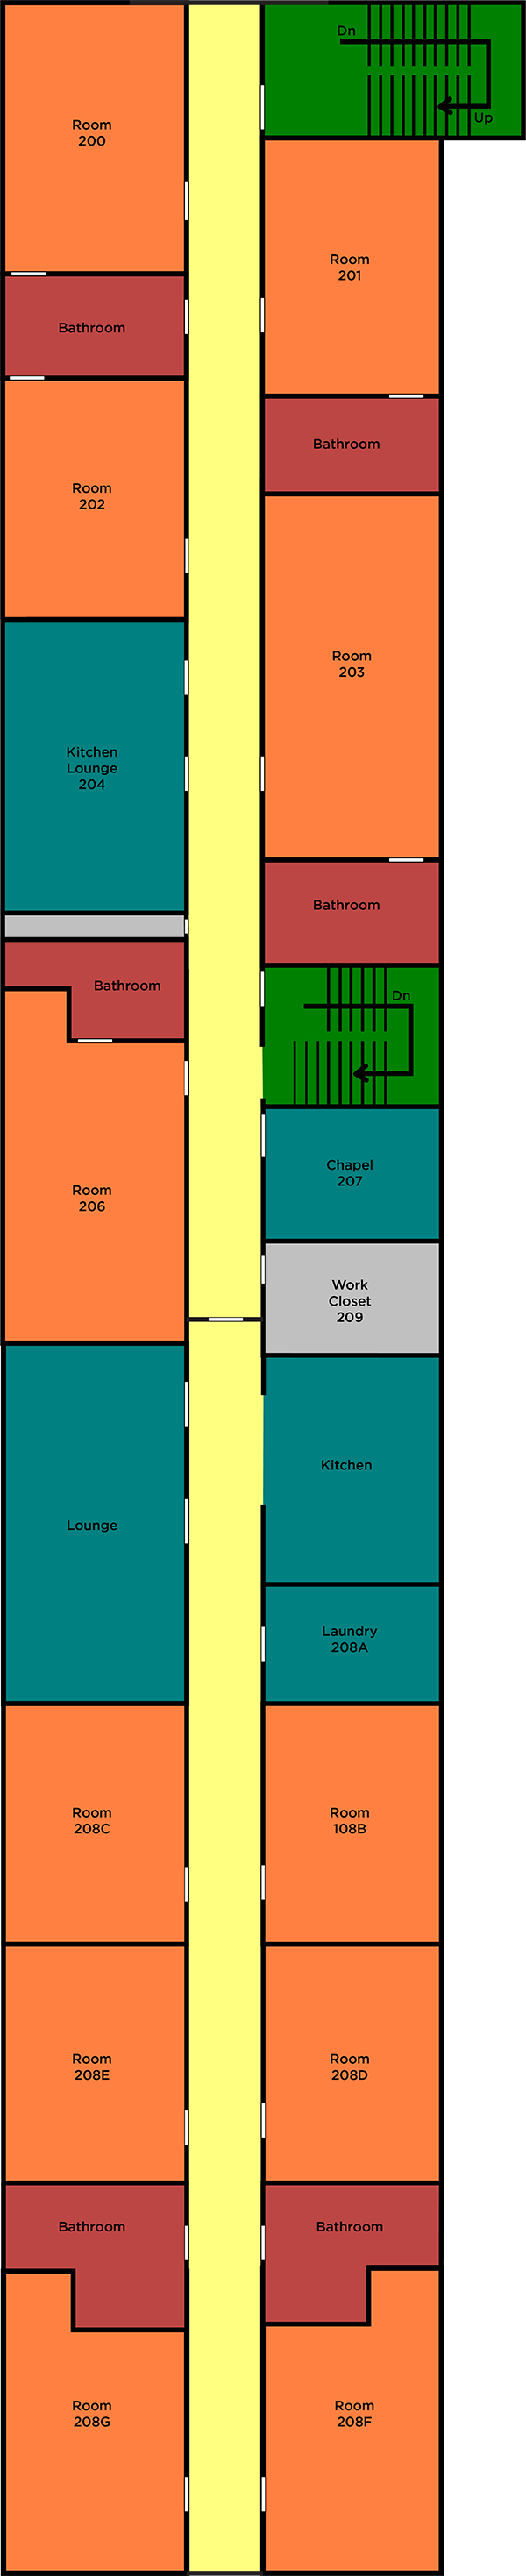 Saint Yons Second Floor Layout